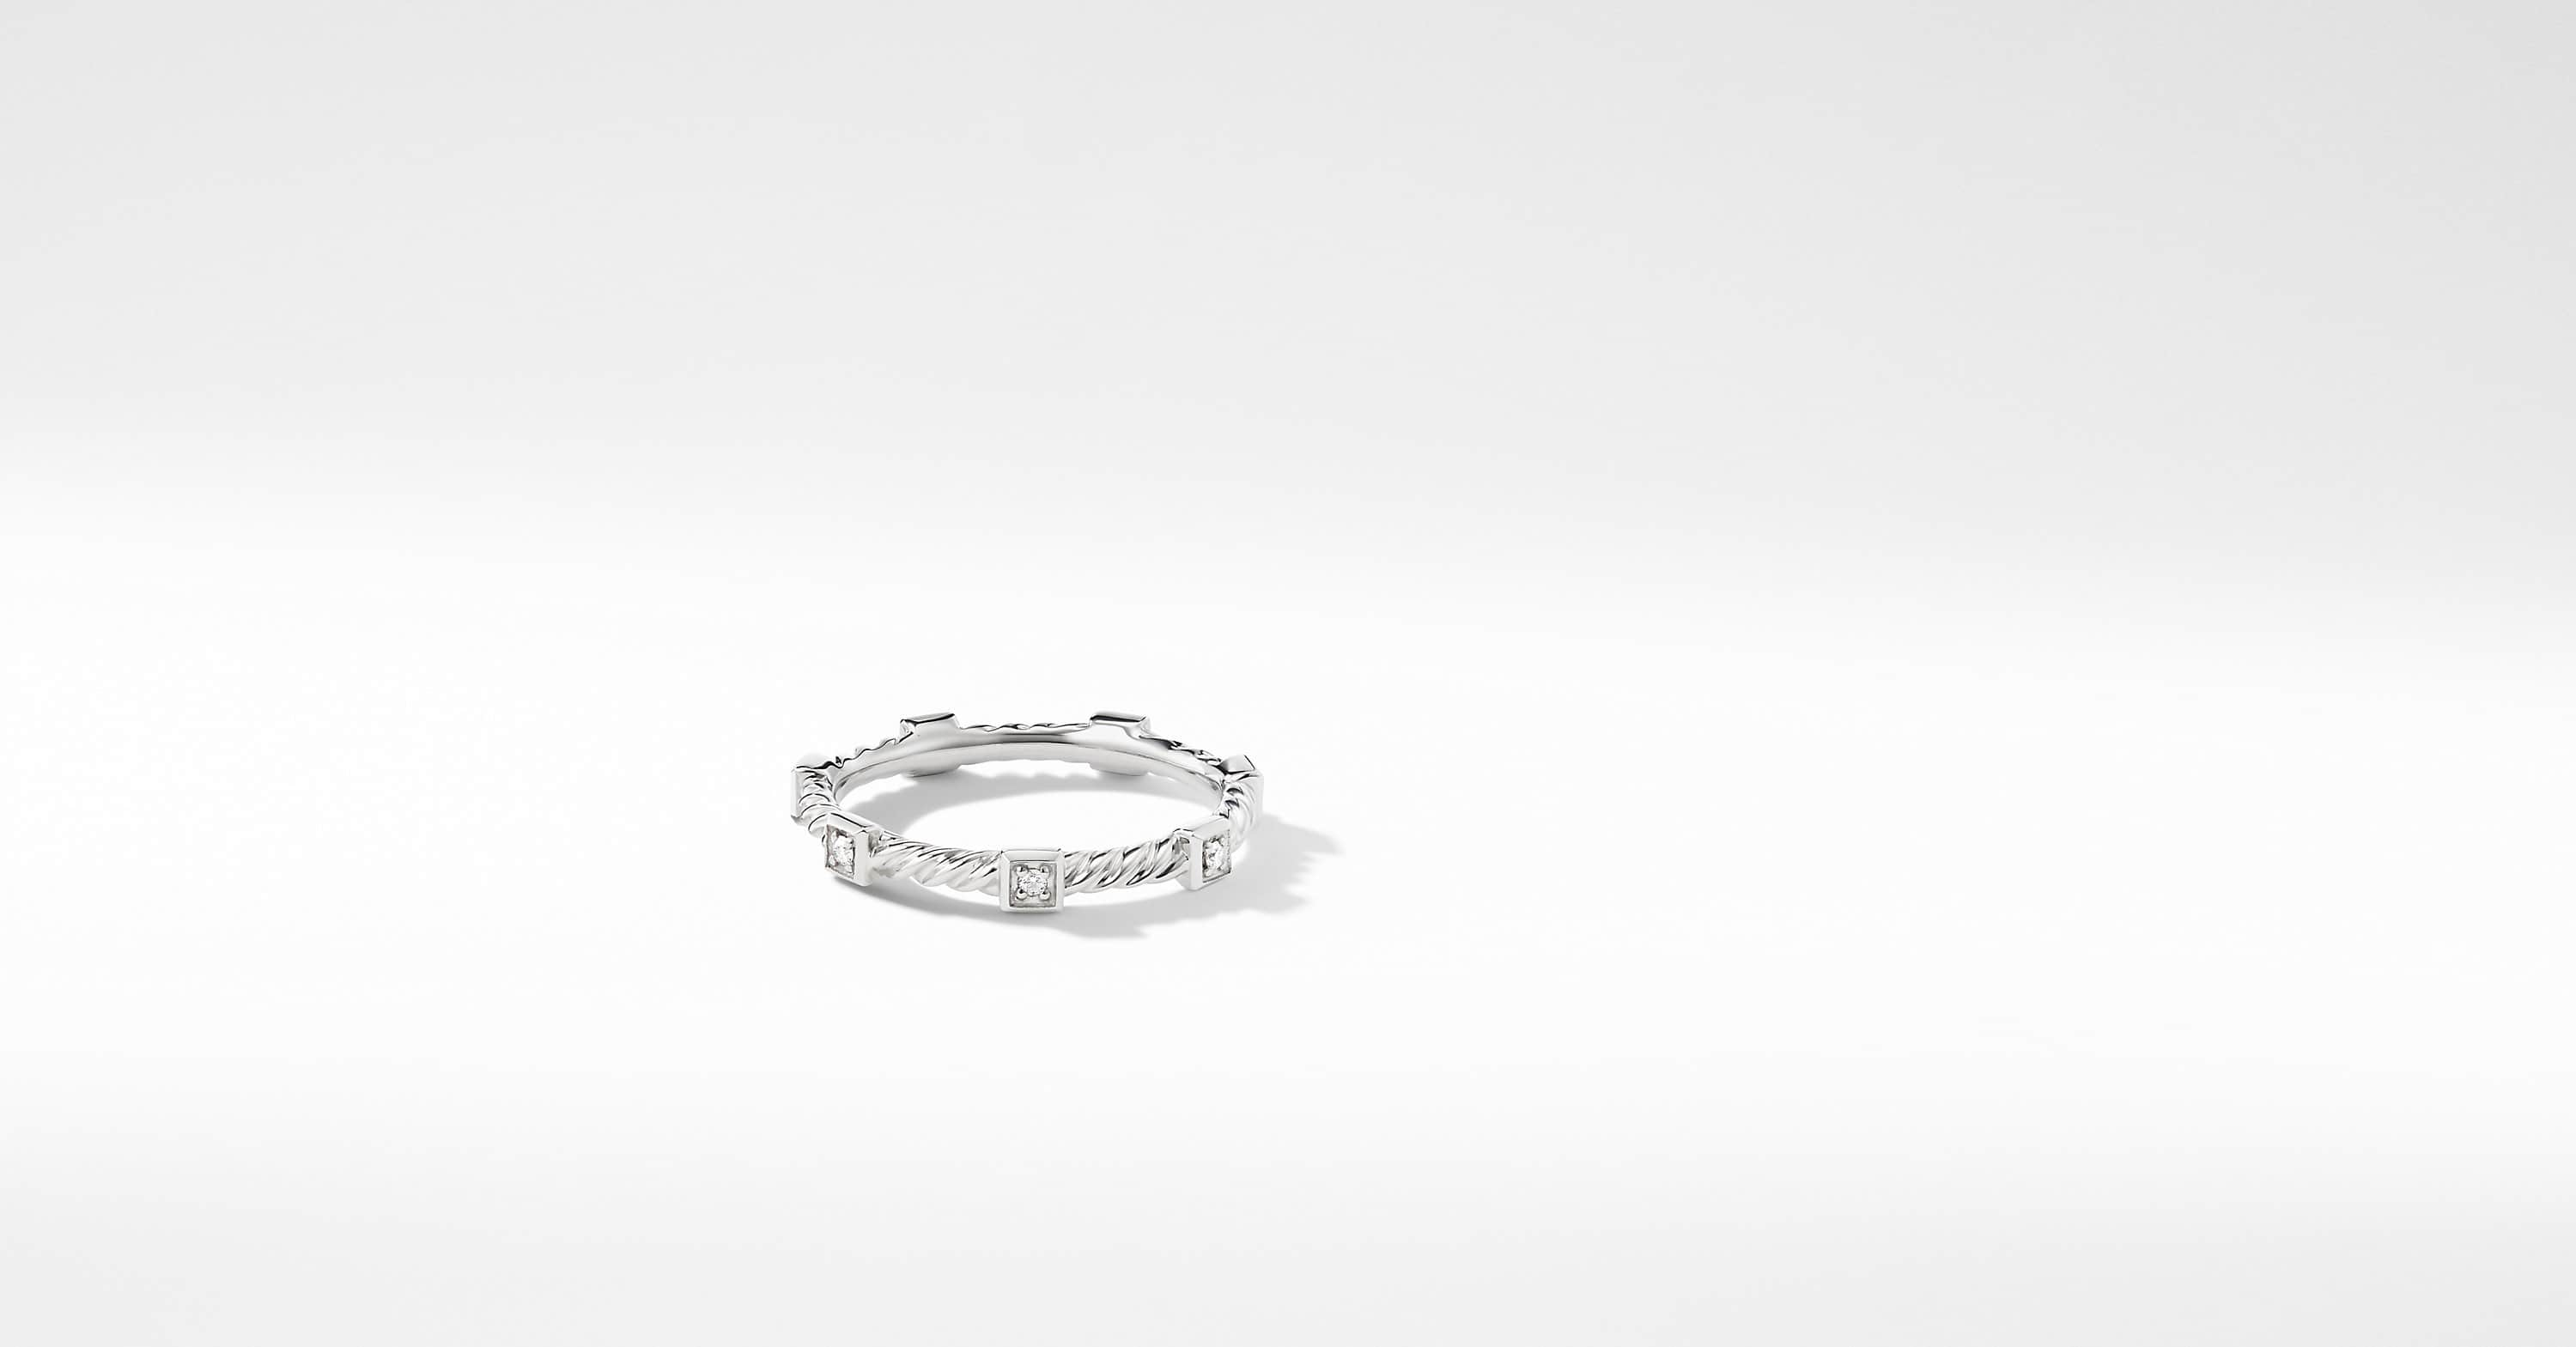 Bague superposable « Cable » Collectibles torsadée en or blanc 18 carats et diamants